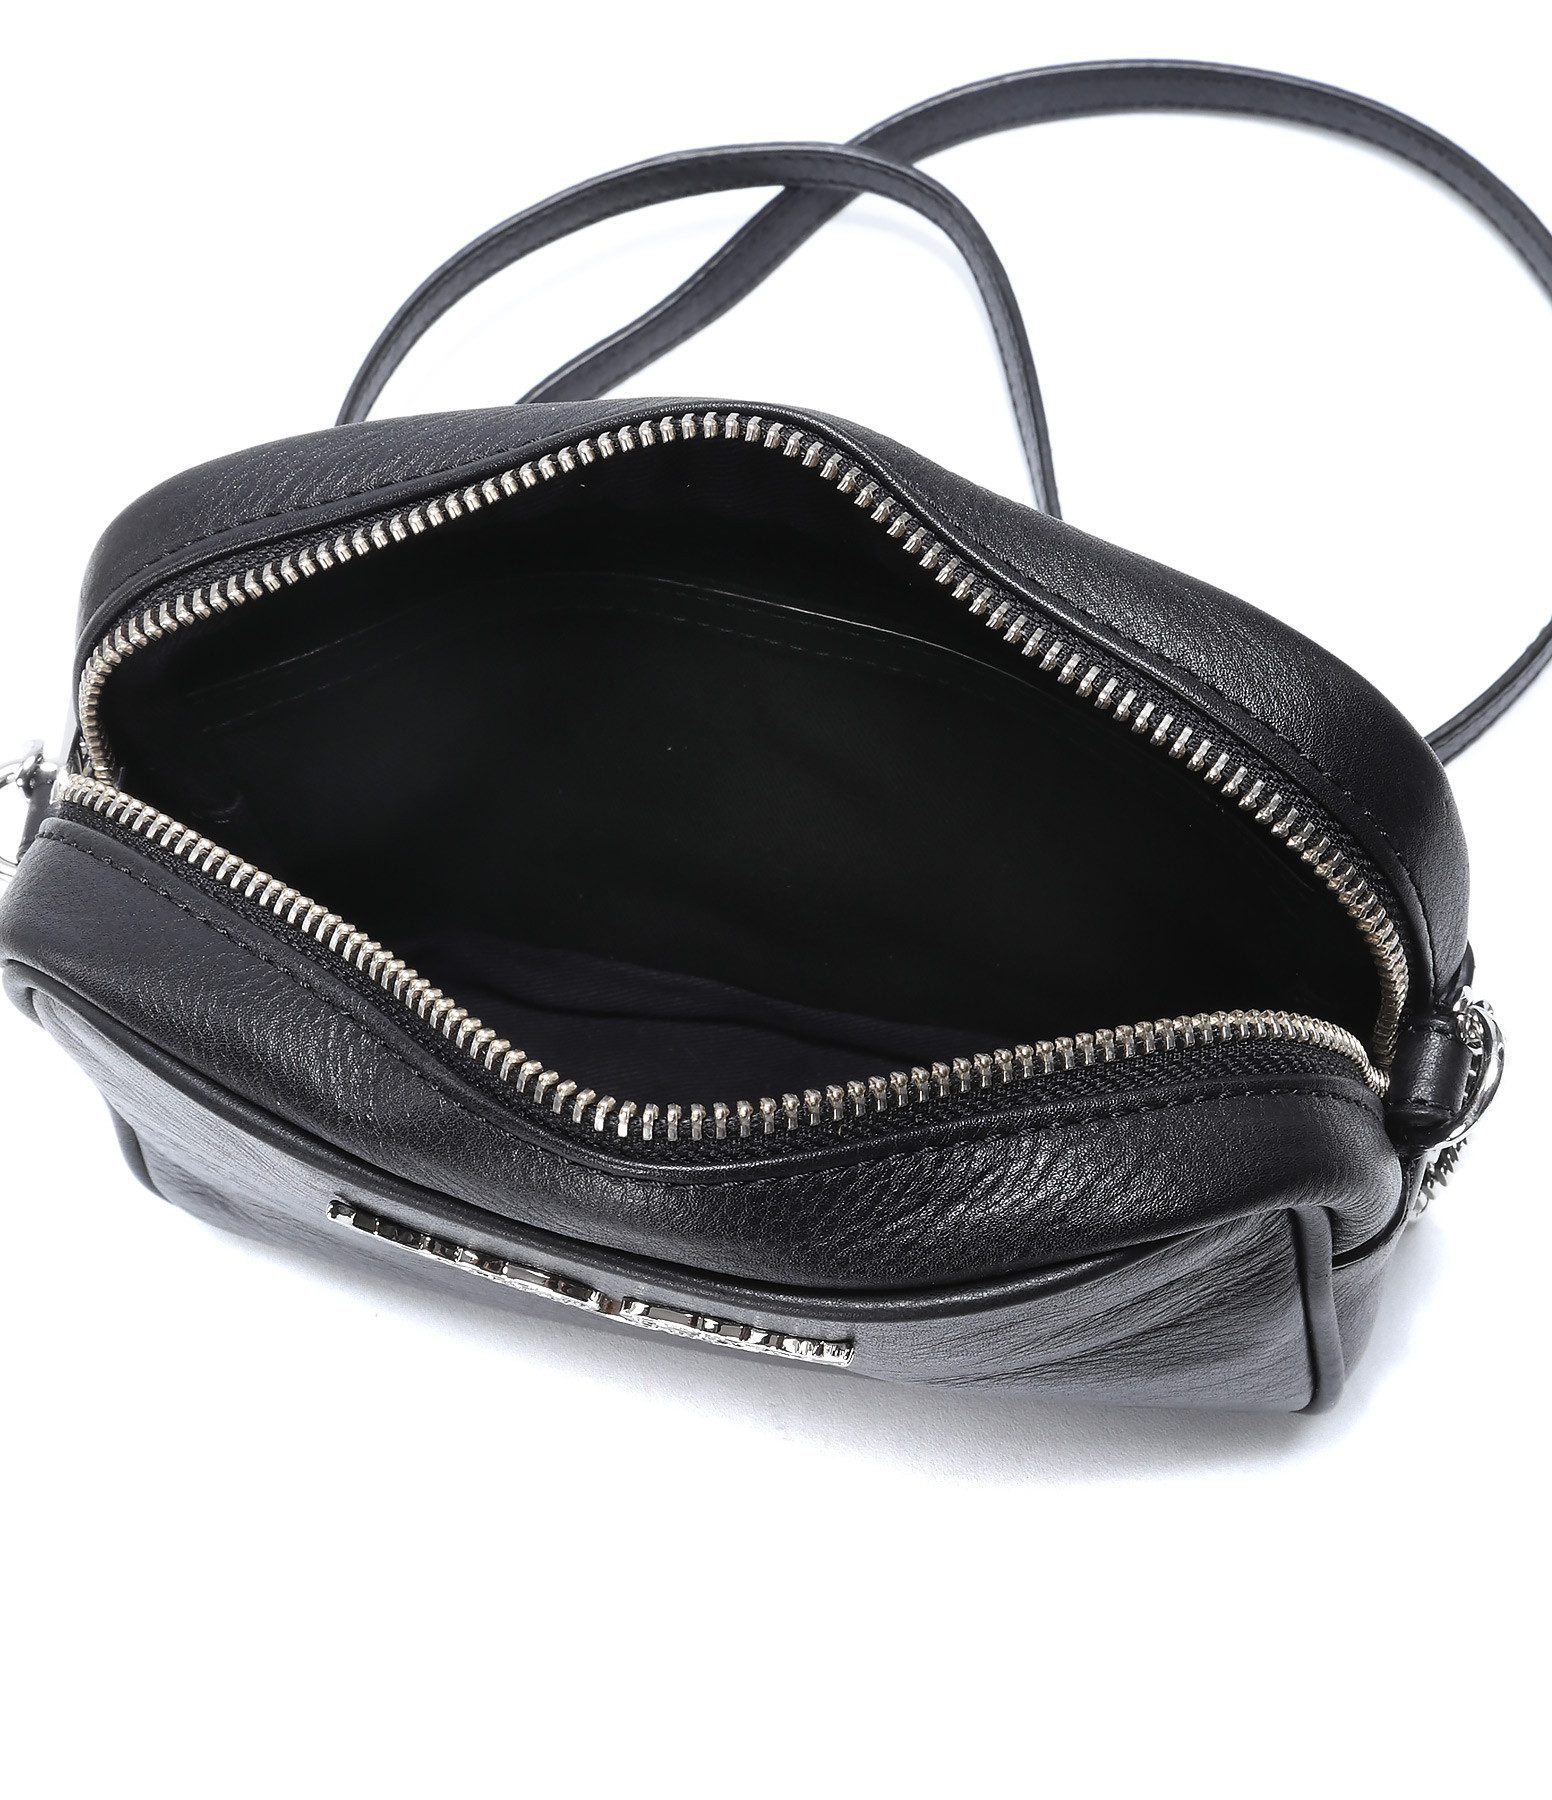 ZADIG & VOLTAIRE - Sac XS Boxy Cuir Noir